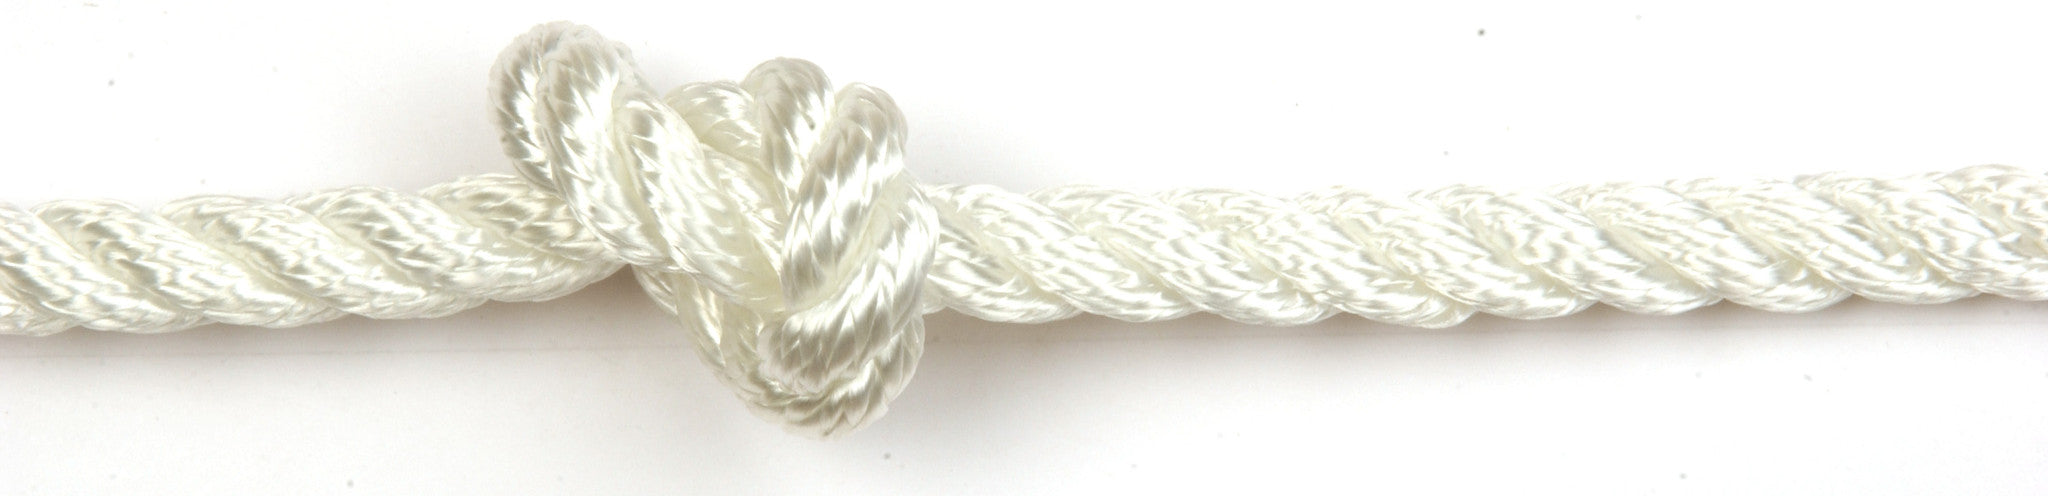 White 3 Strand Polyester Rope - 100m Reel